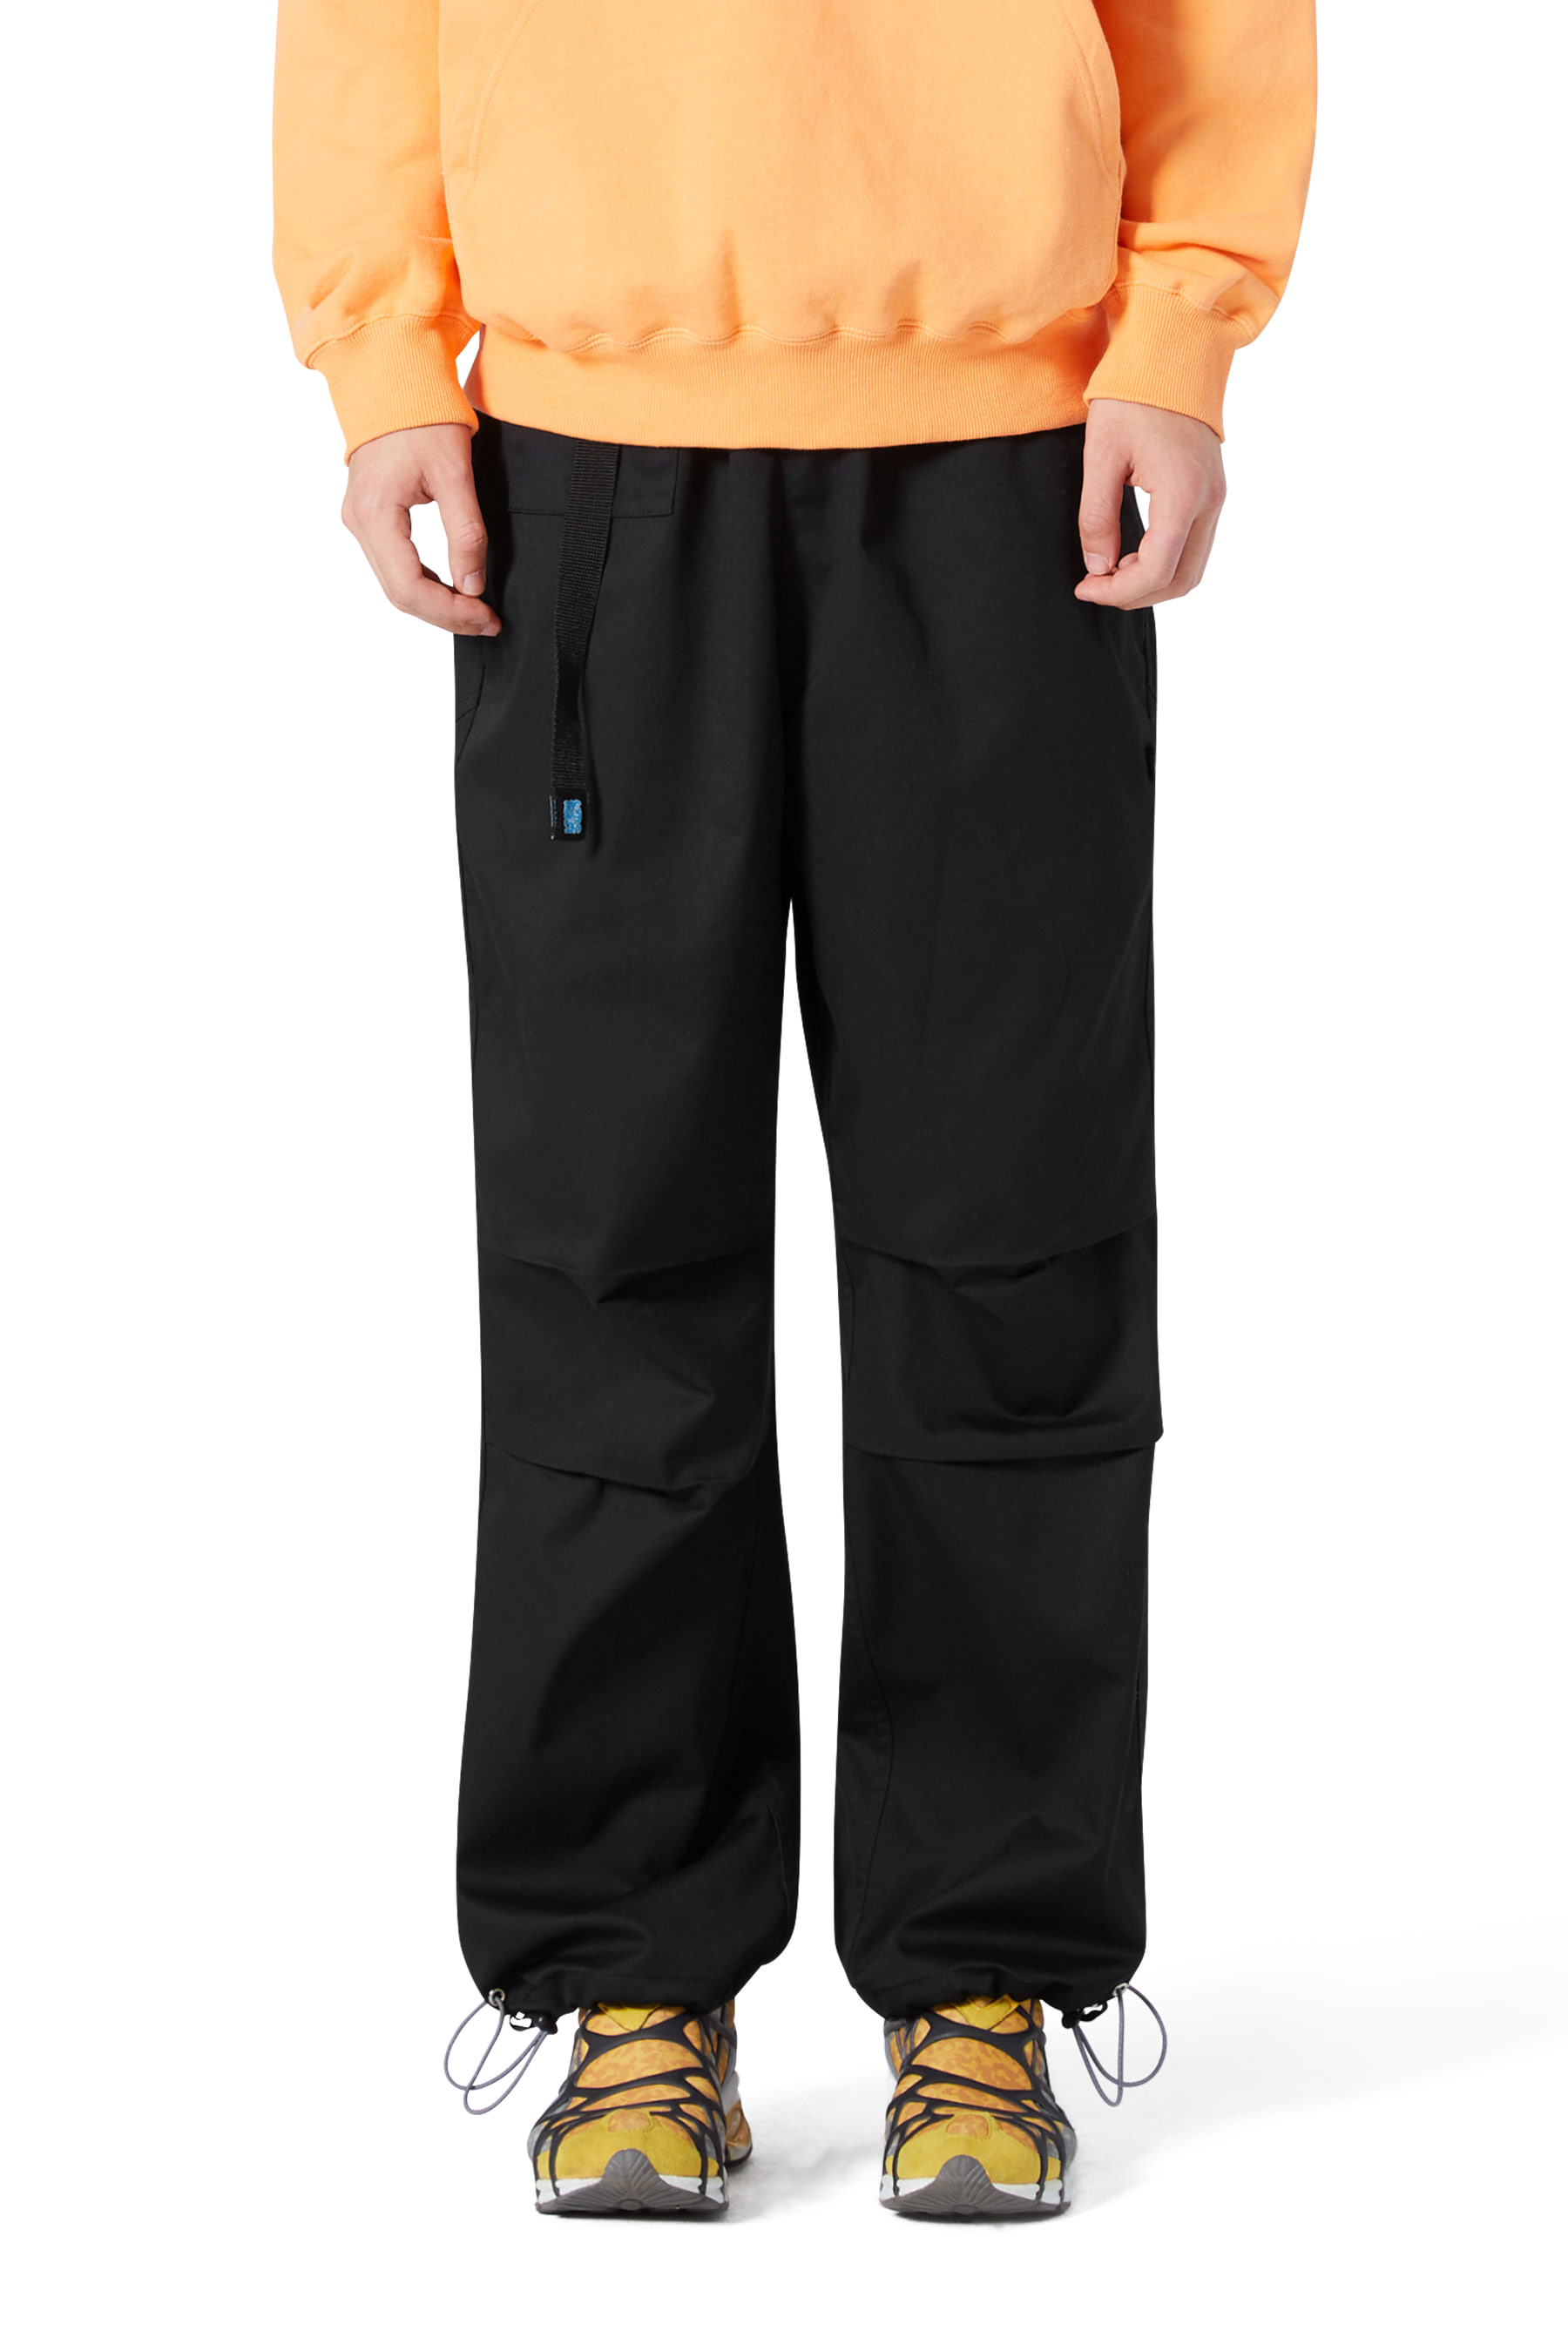 Y.E.S Jungle Pants Black